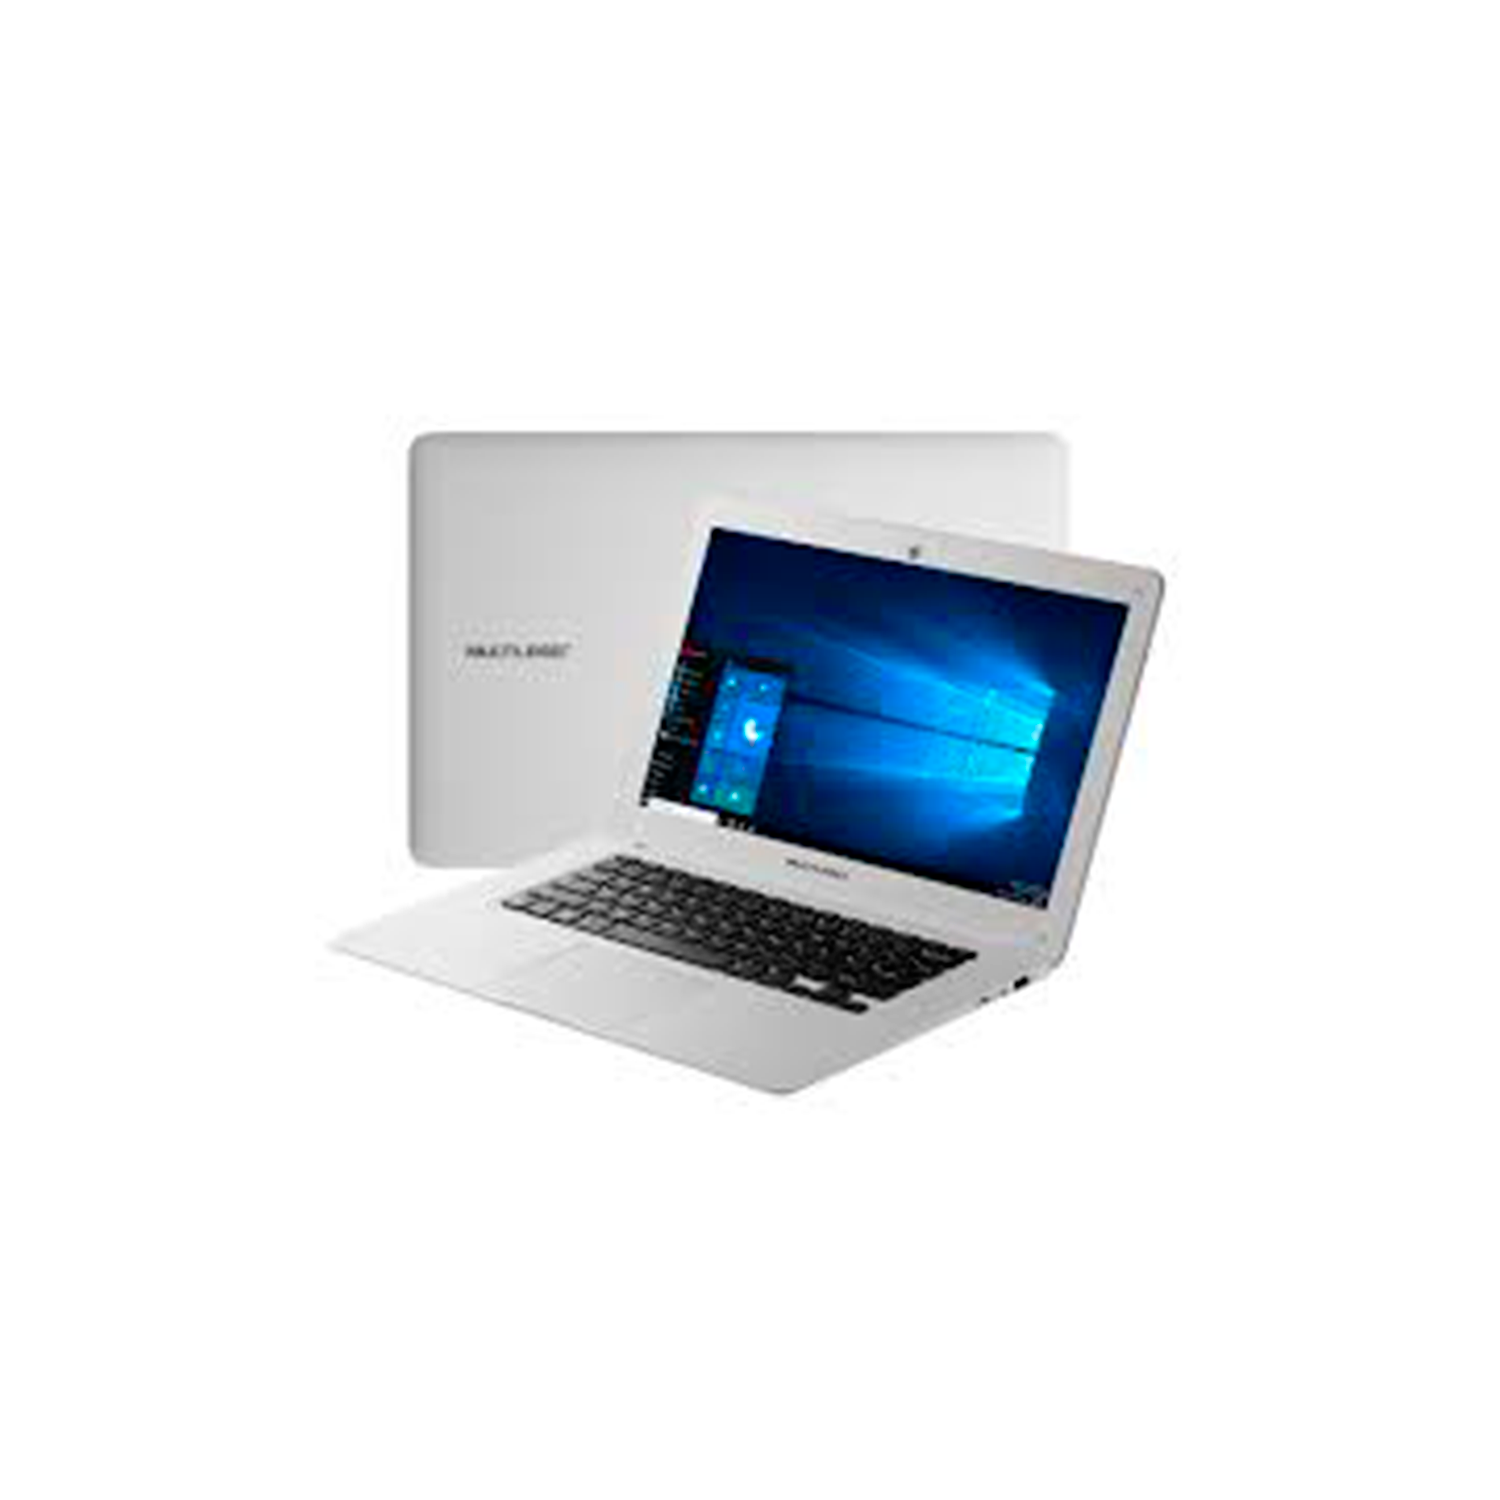 NOTEBOOK LEGACY 14.1POL PC210 MULTIL